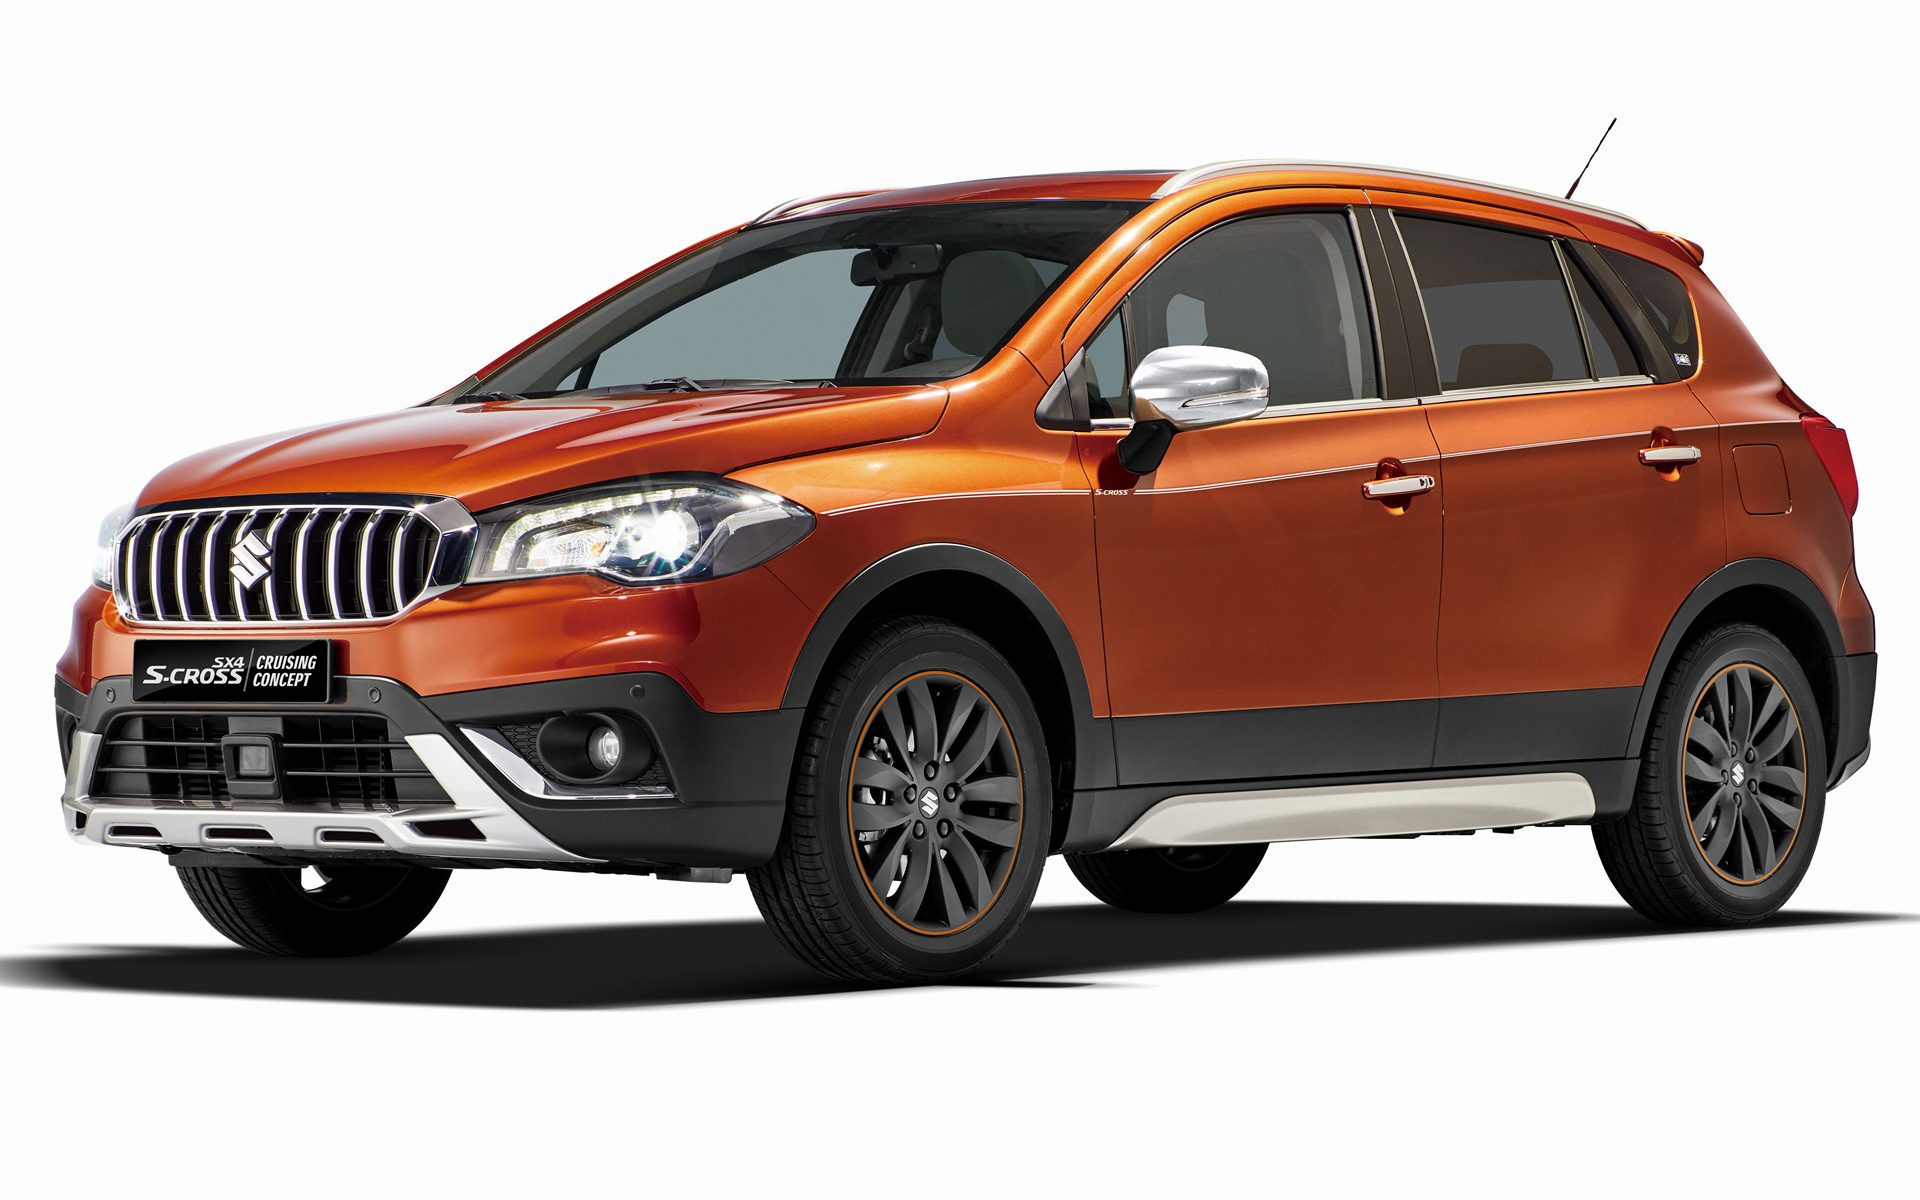 2016 suzuki sx4 s cross cruising concept wallpapers and. Black Bedroom Furniture Sets. Home Design Ideas